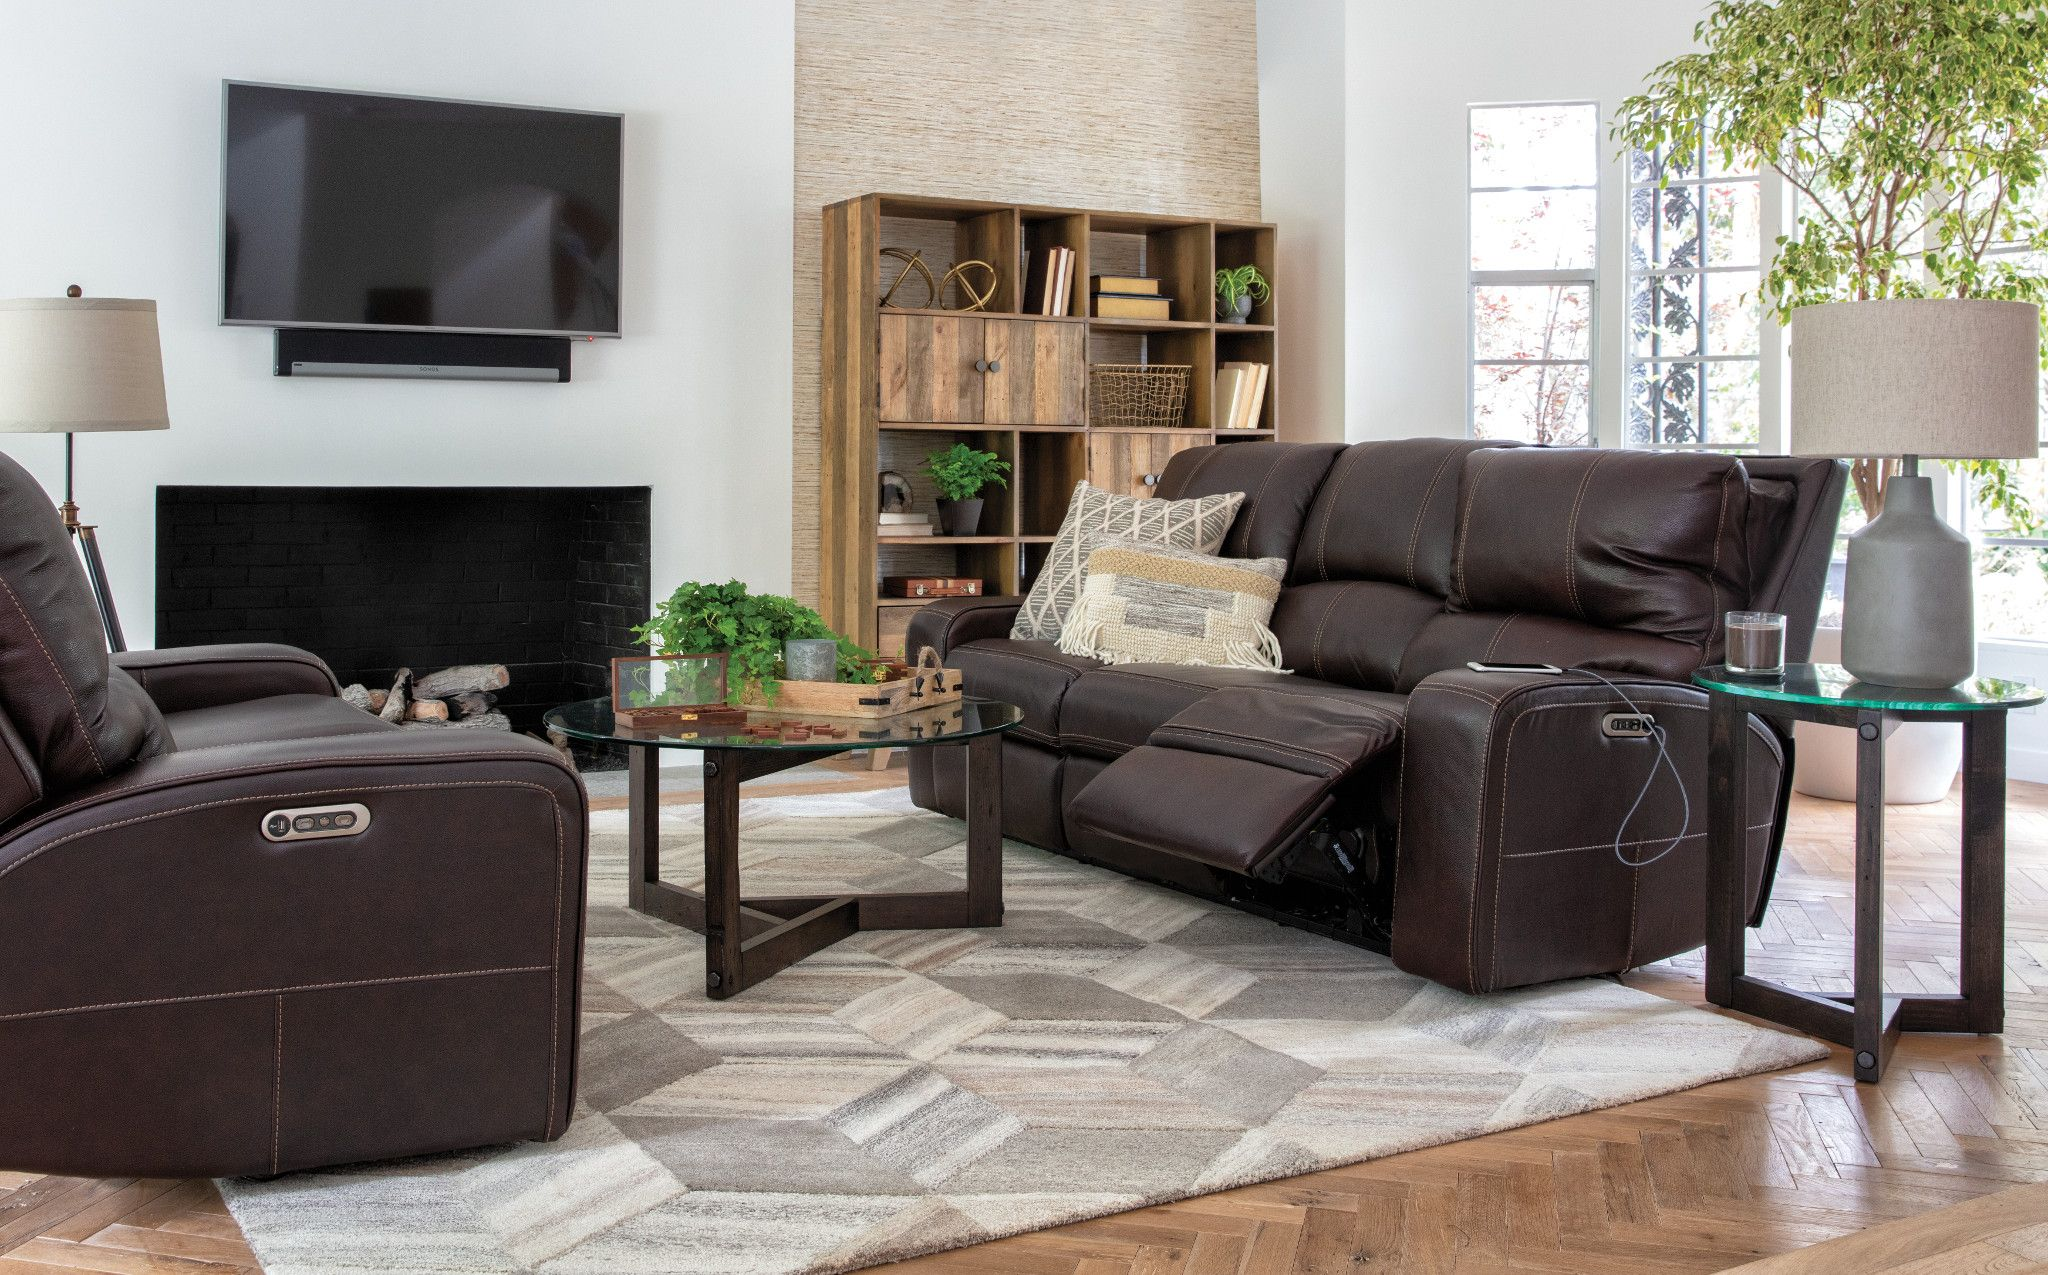 Pin On Sofas And Sectionals #white #leather #living #room